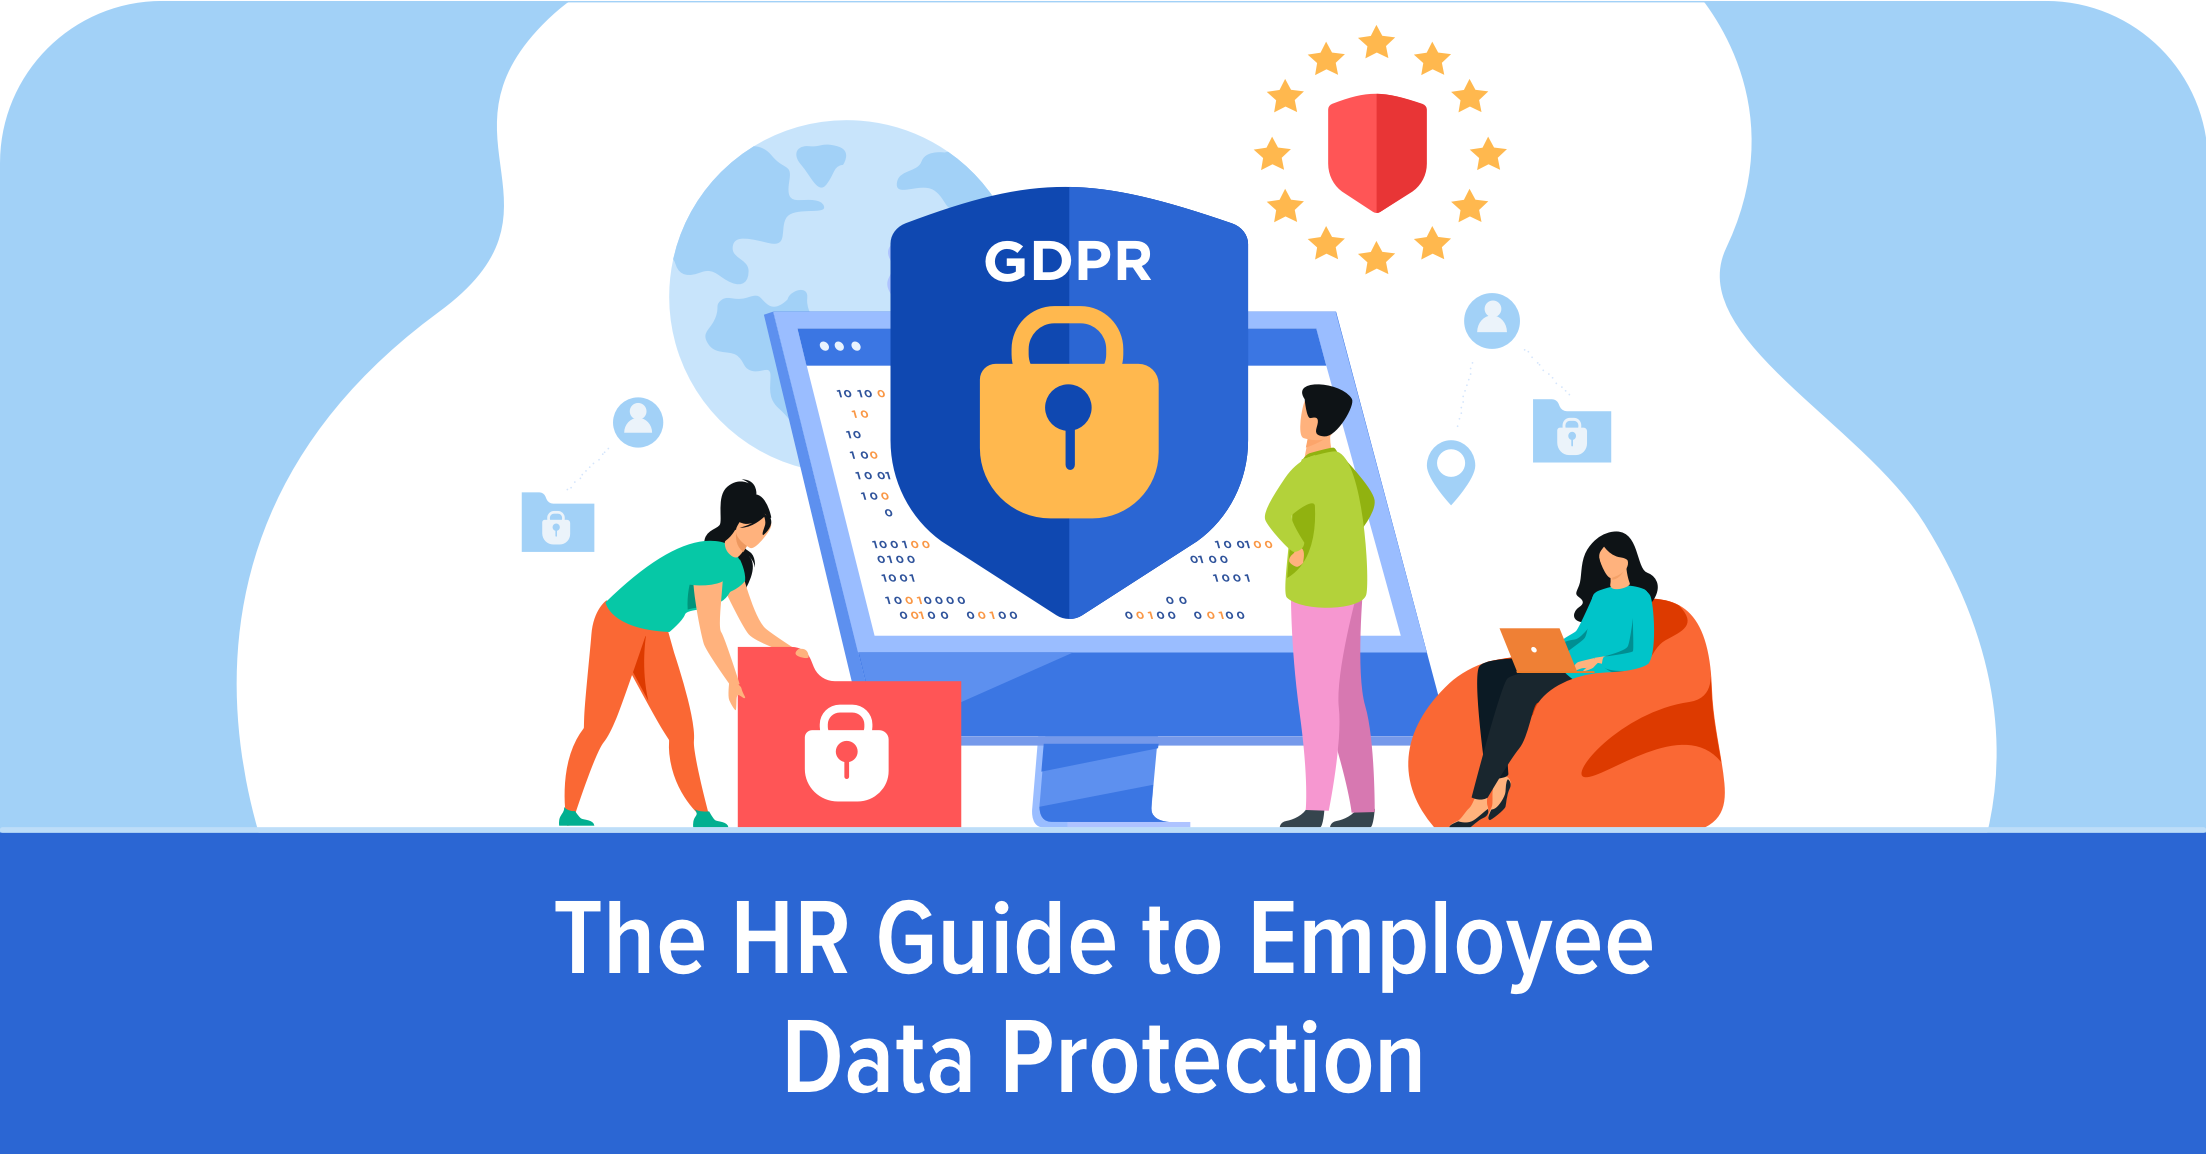 The HR Guide to Employee Data Protection